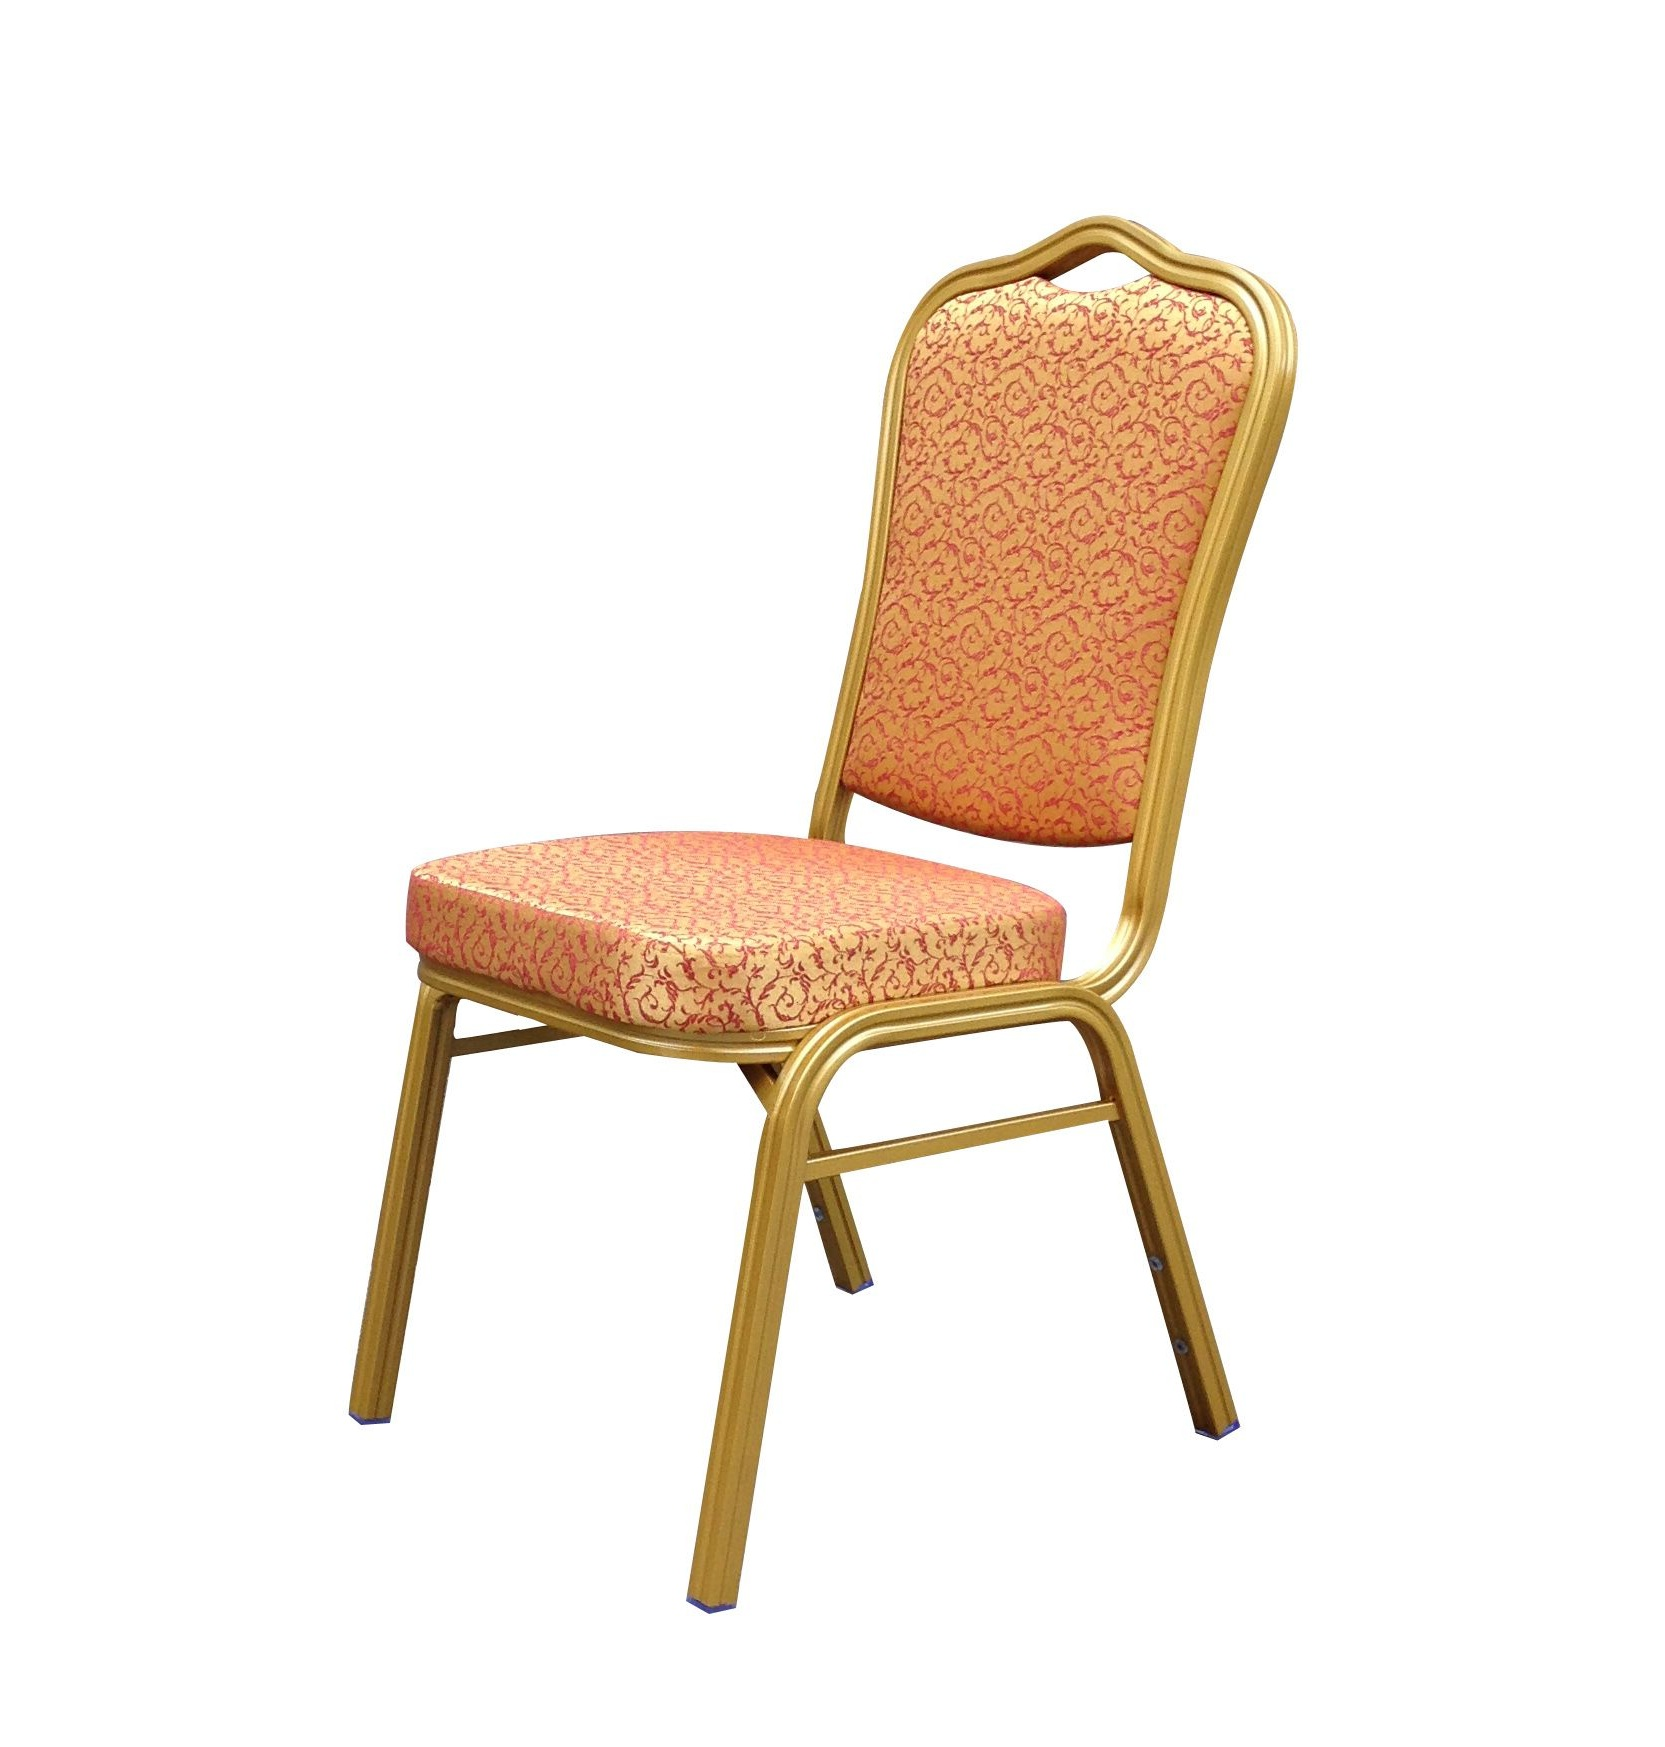 2017 wholesale price Price Airport Chair Waiting Chairs -